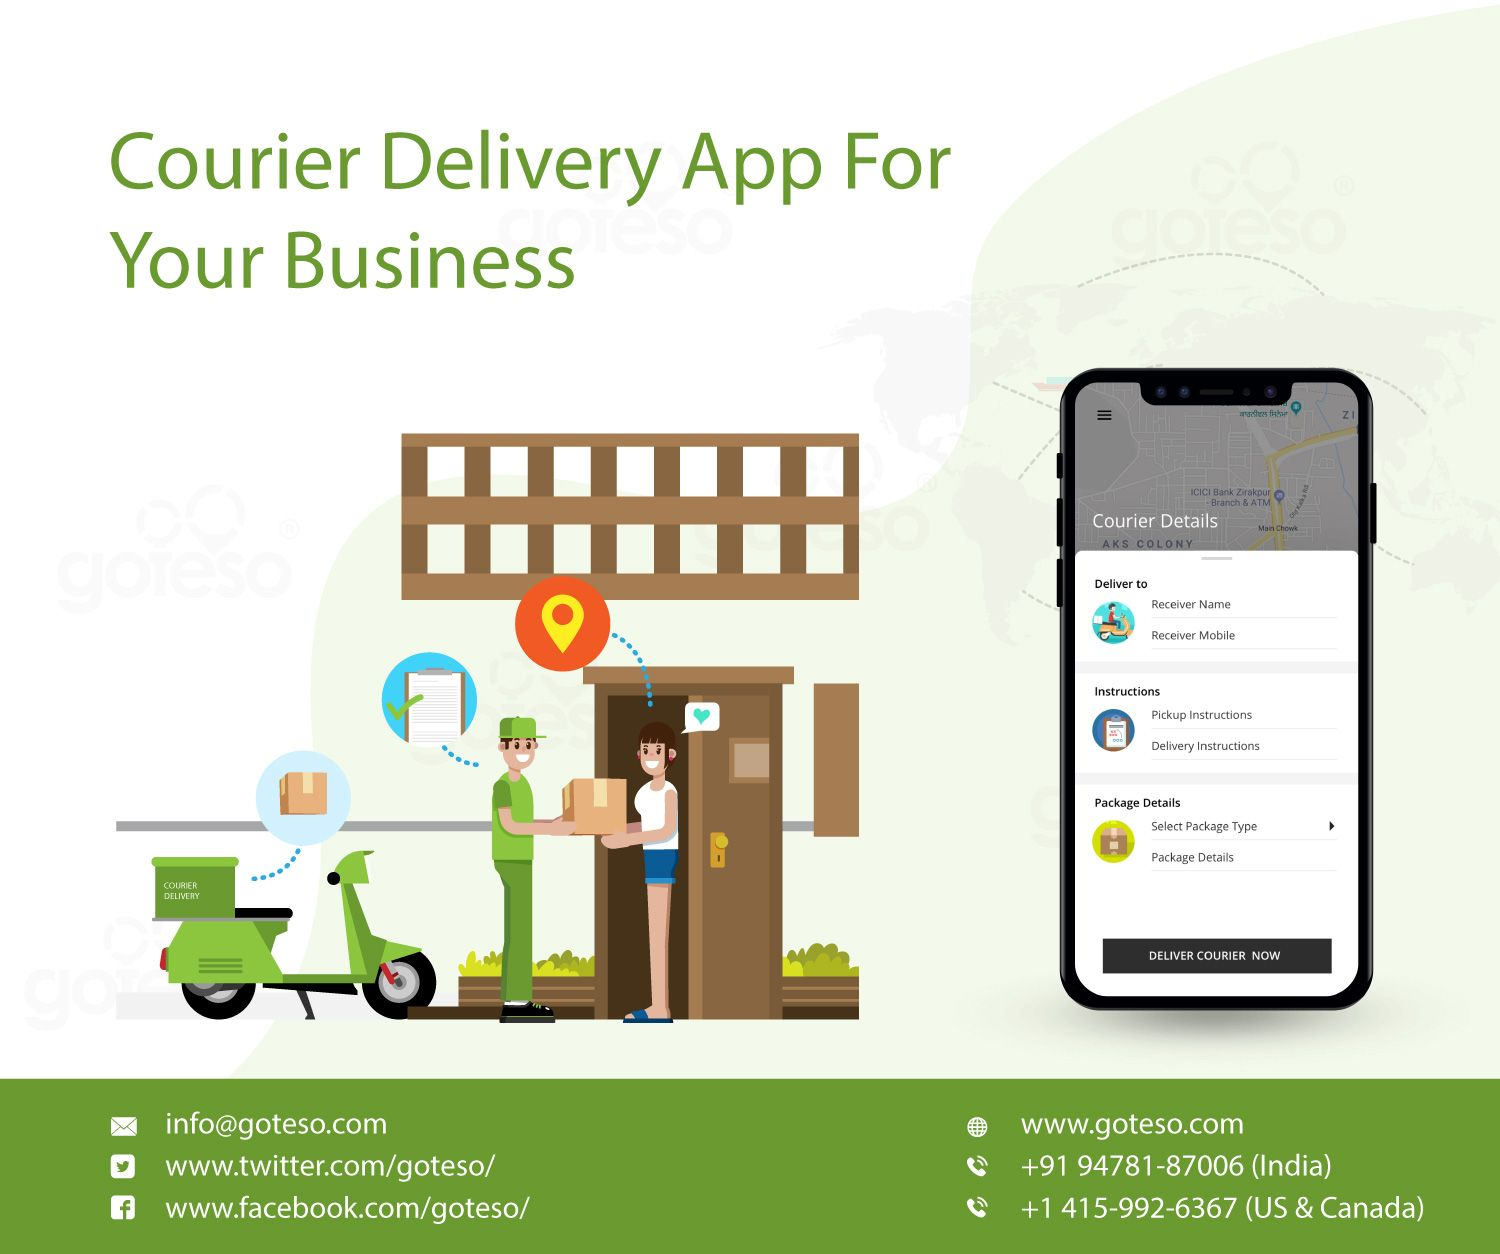 Goteso is on demand courier delivery app development company